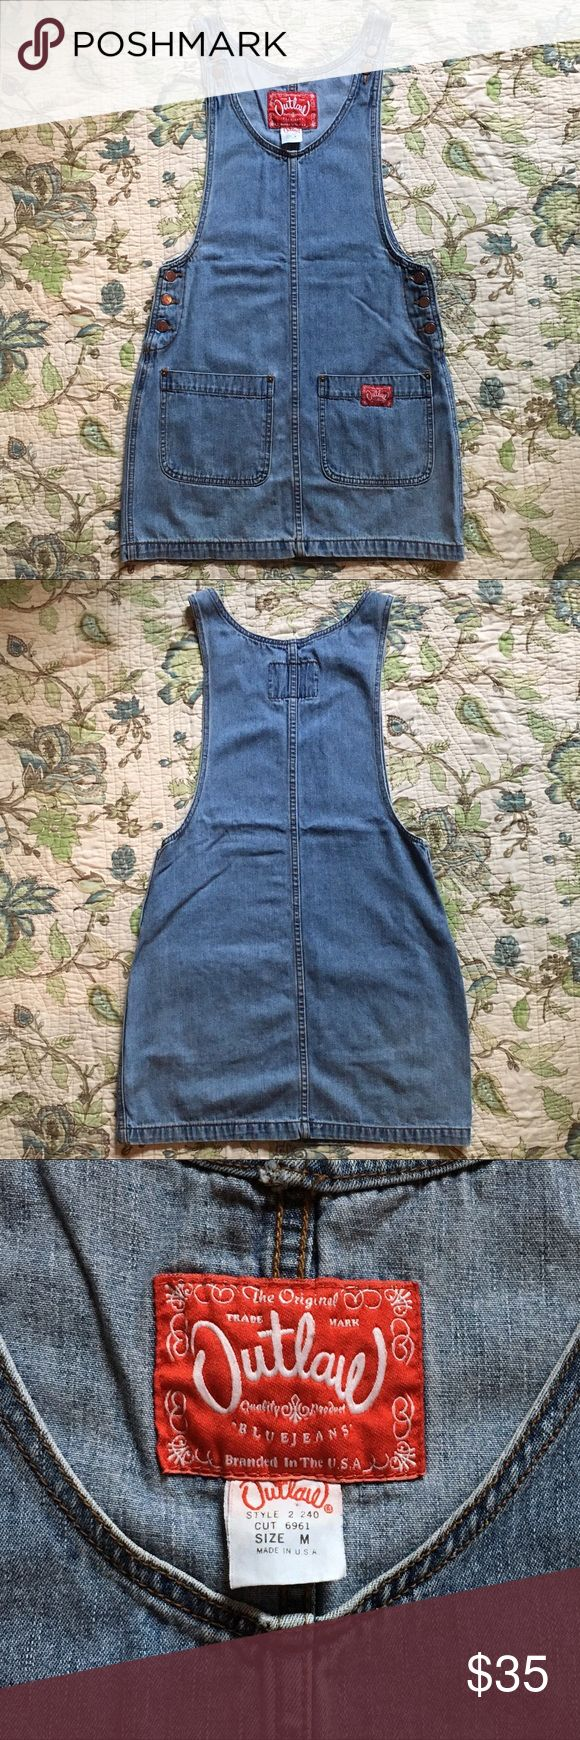 """Vintage 90s denim overall dress Vintage 90s denim overall dress. Blue Jean overall button straps, has 2 pockets in the front. Slight wear at the corners in the pockets. Measurements are taken laying flat: length: 33"""" Vintage Dresses Mini"""